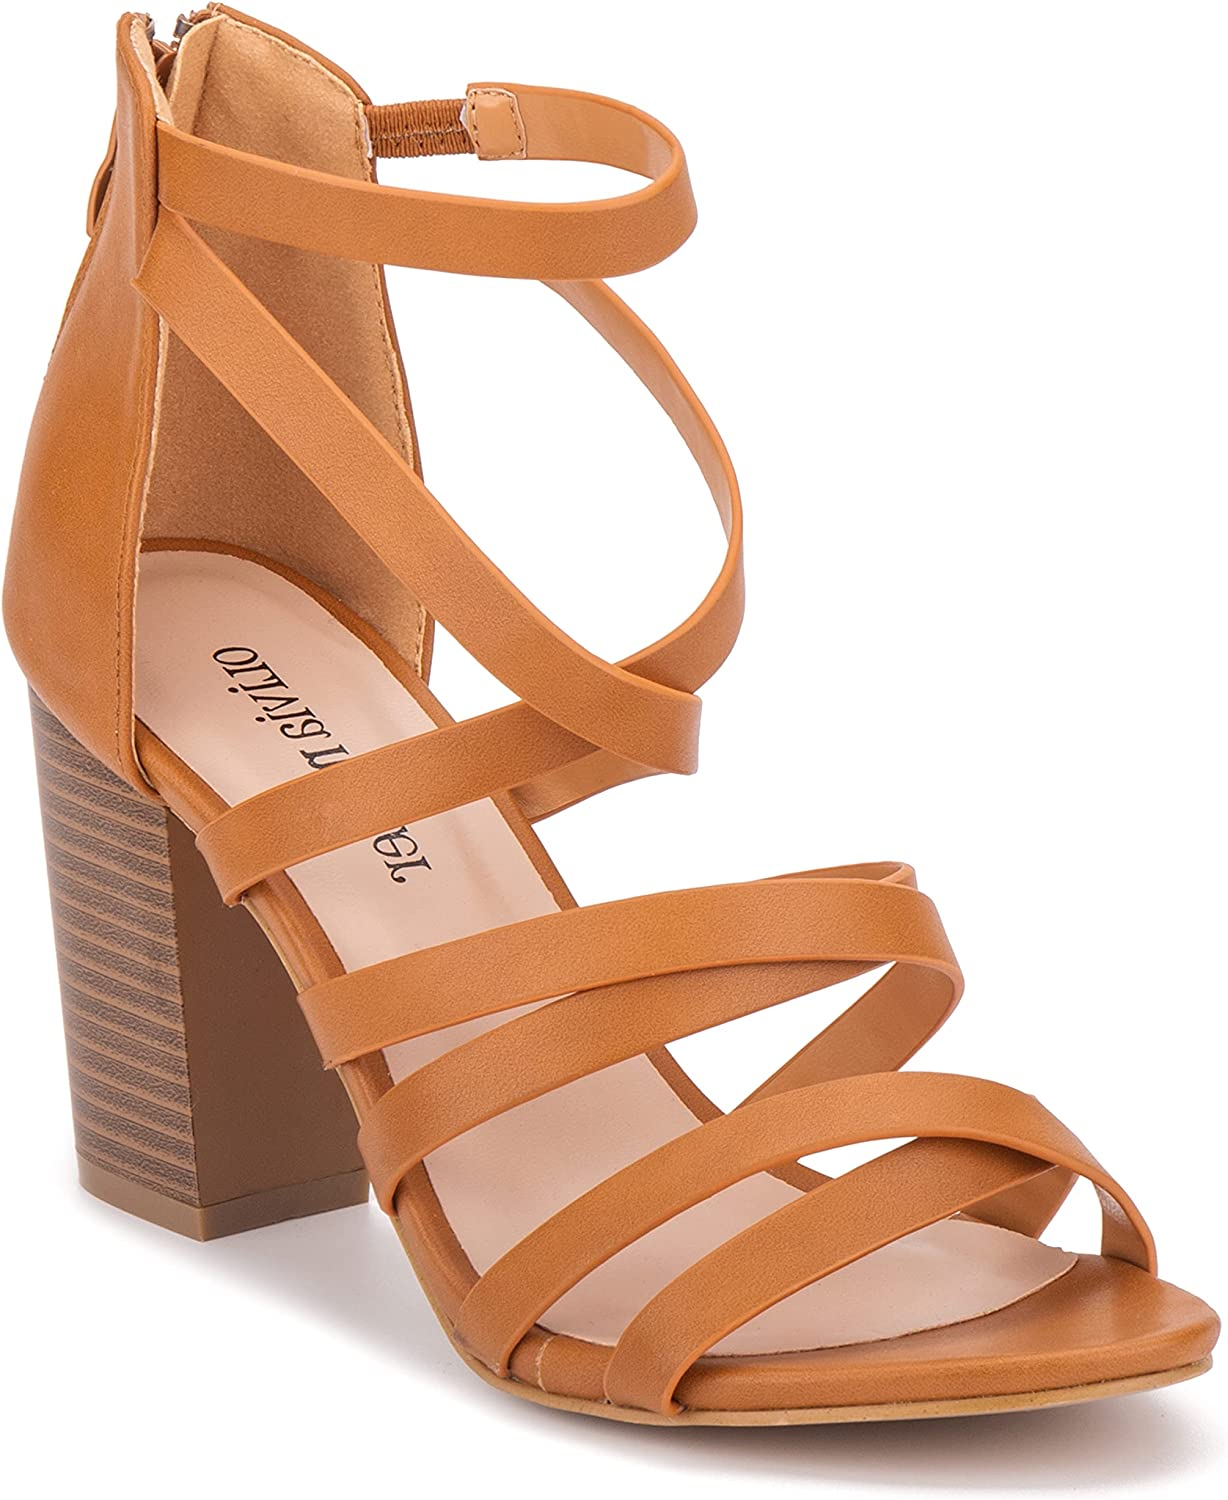 Olivia Max 79% OFF Miller Memphis Mall Women's Shoes Treat Ankle Strap Yourself B Ladies